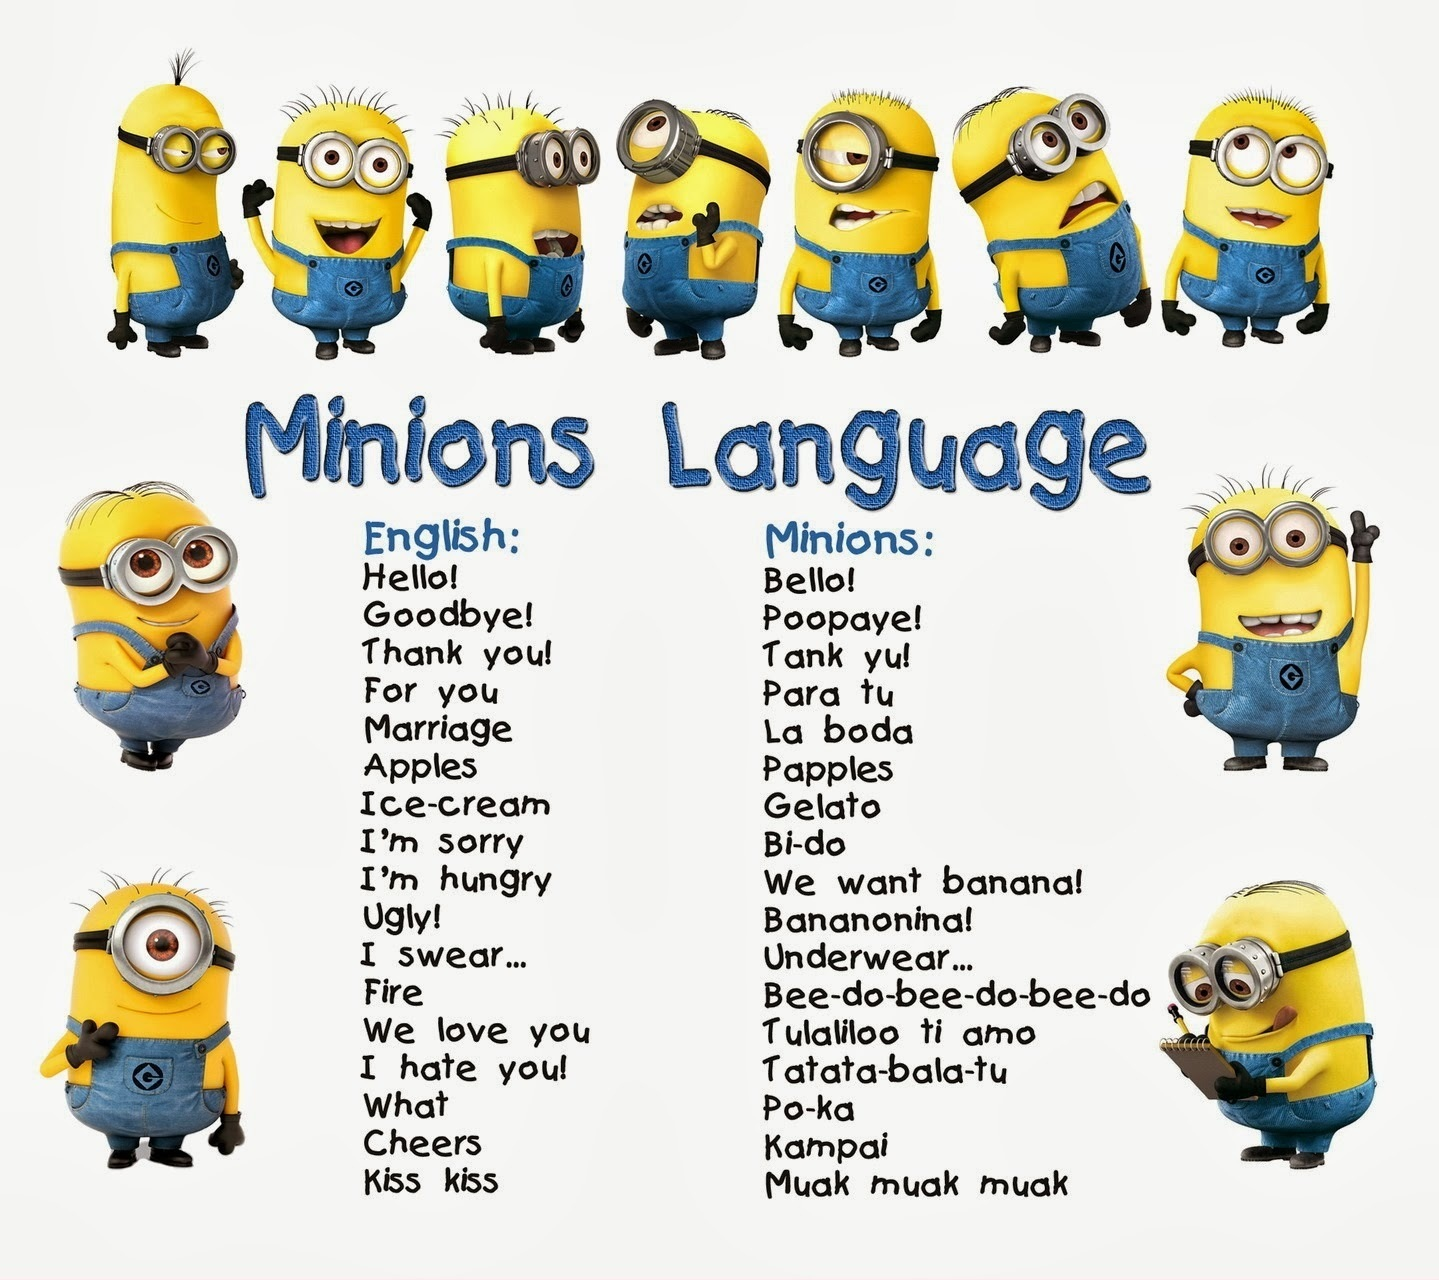 Minions Language 14406487271659624574 minions language pincaption